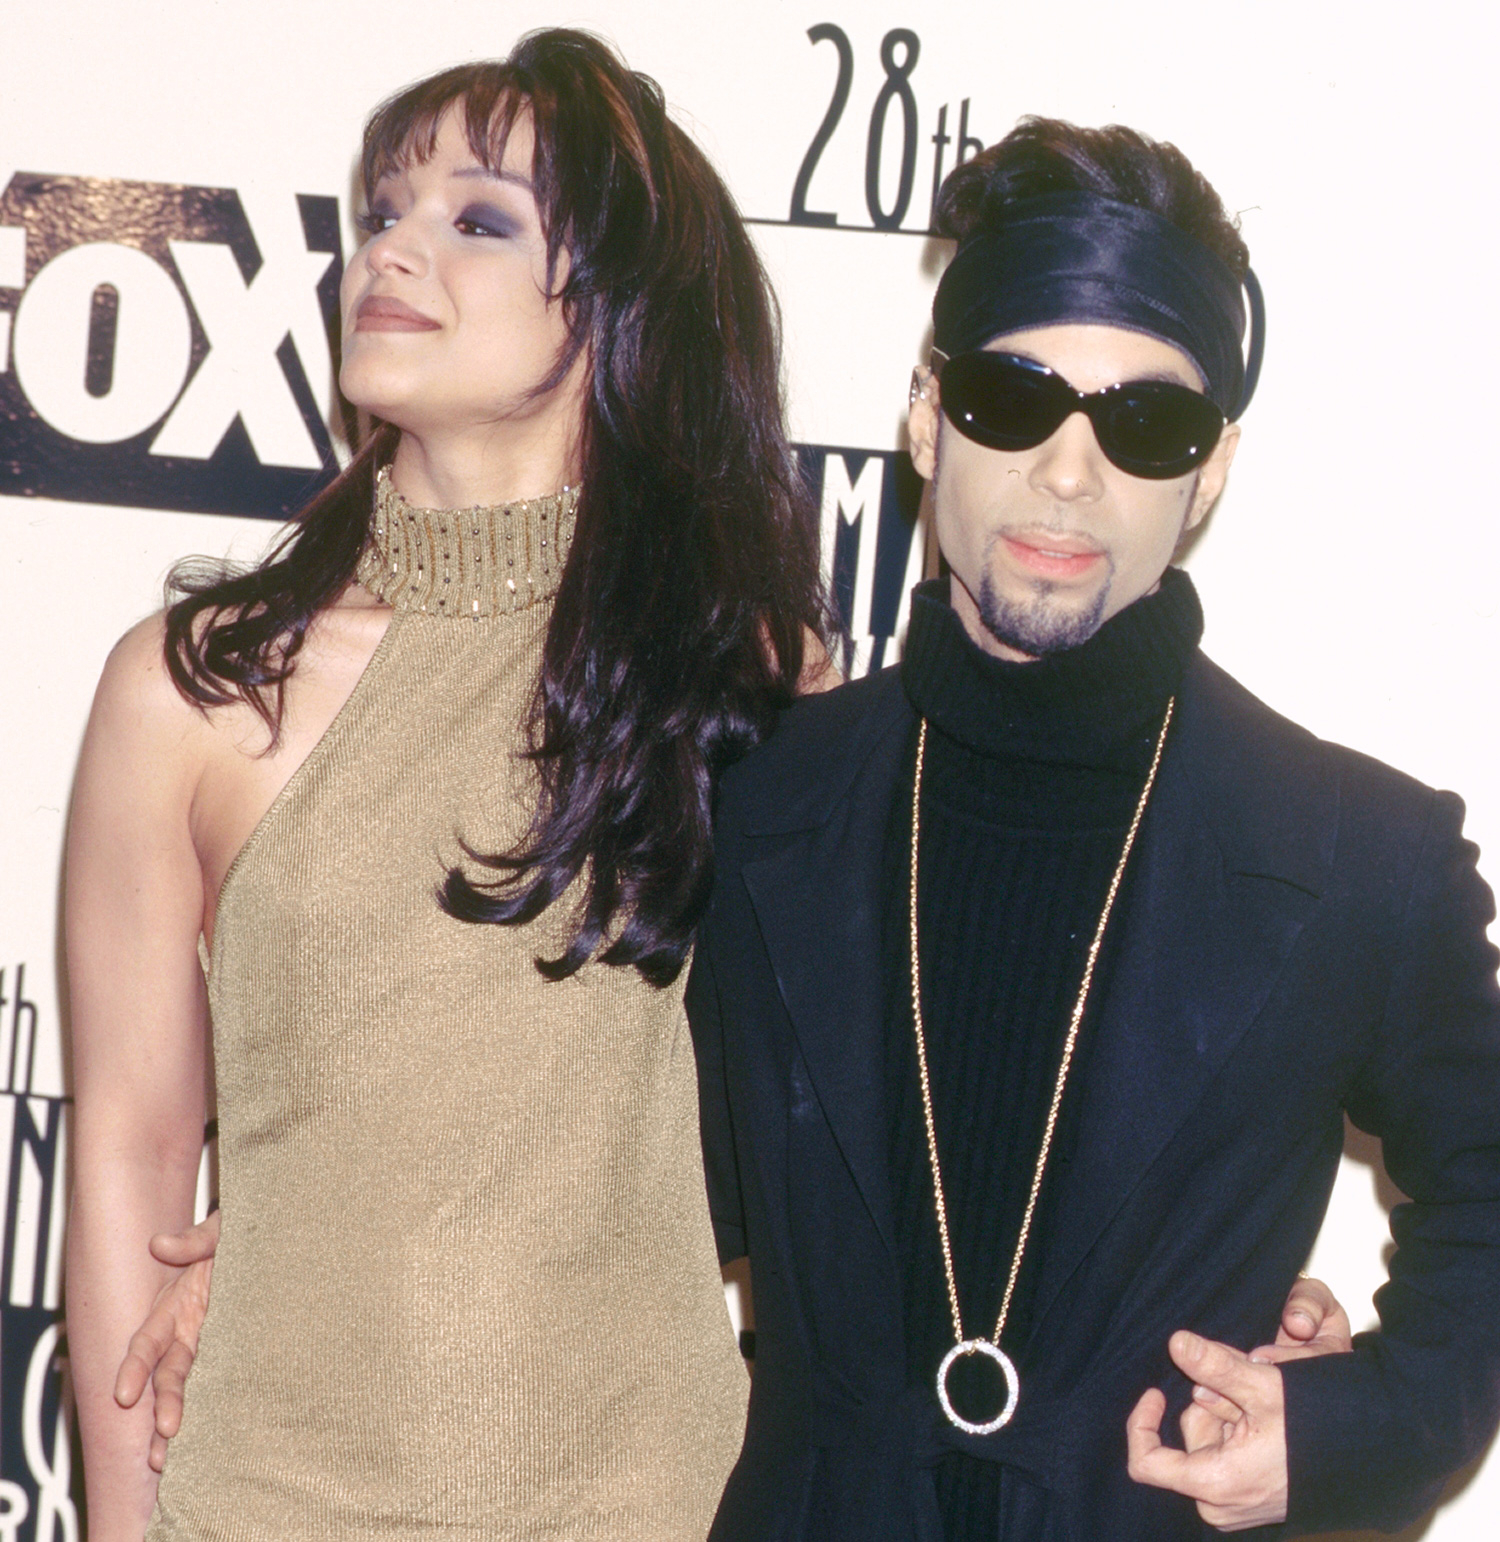 Prince and his wife Mayte Garcia